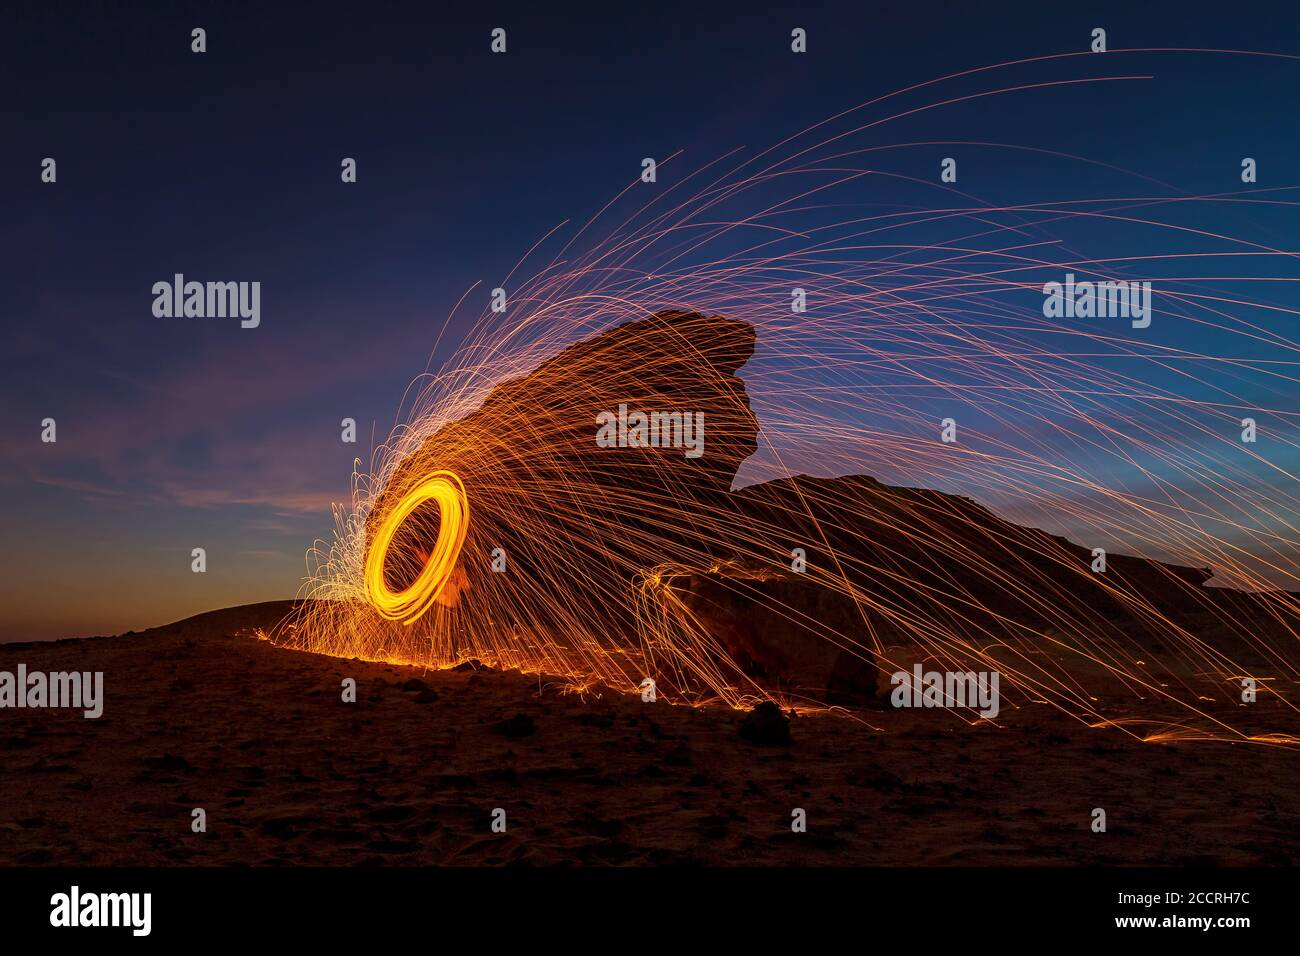 A steel wool on fire at night (night photography using a slow shutter speed) - selective focused on the subject. Stock Photo